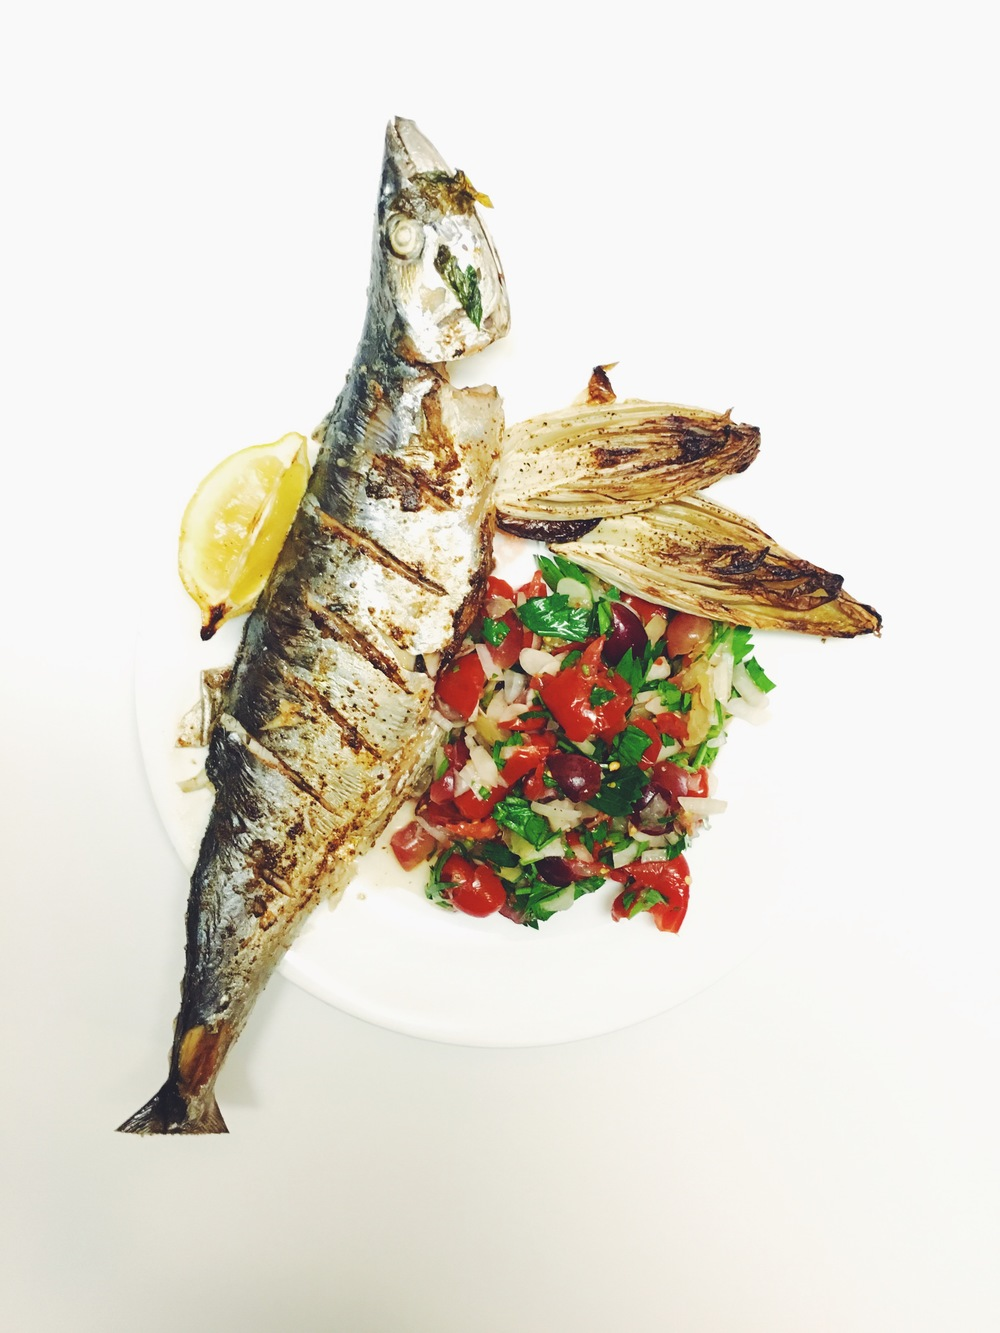 BAKED MACKEREL WITH TOMATO GRAPE SALSA